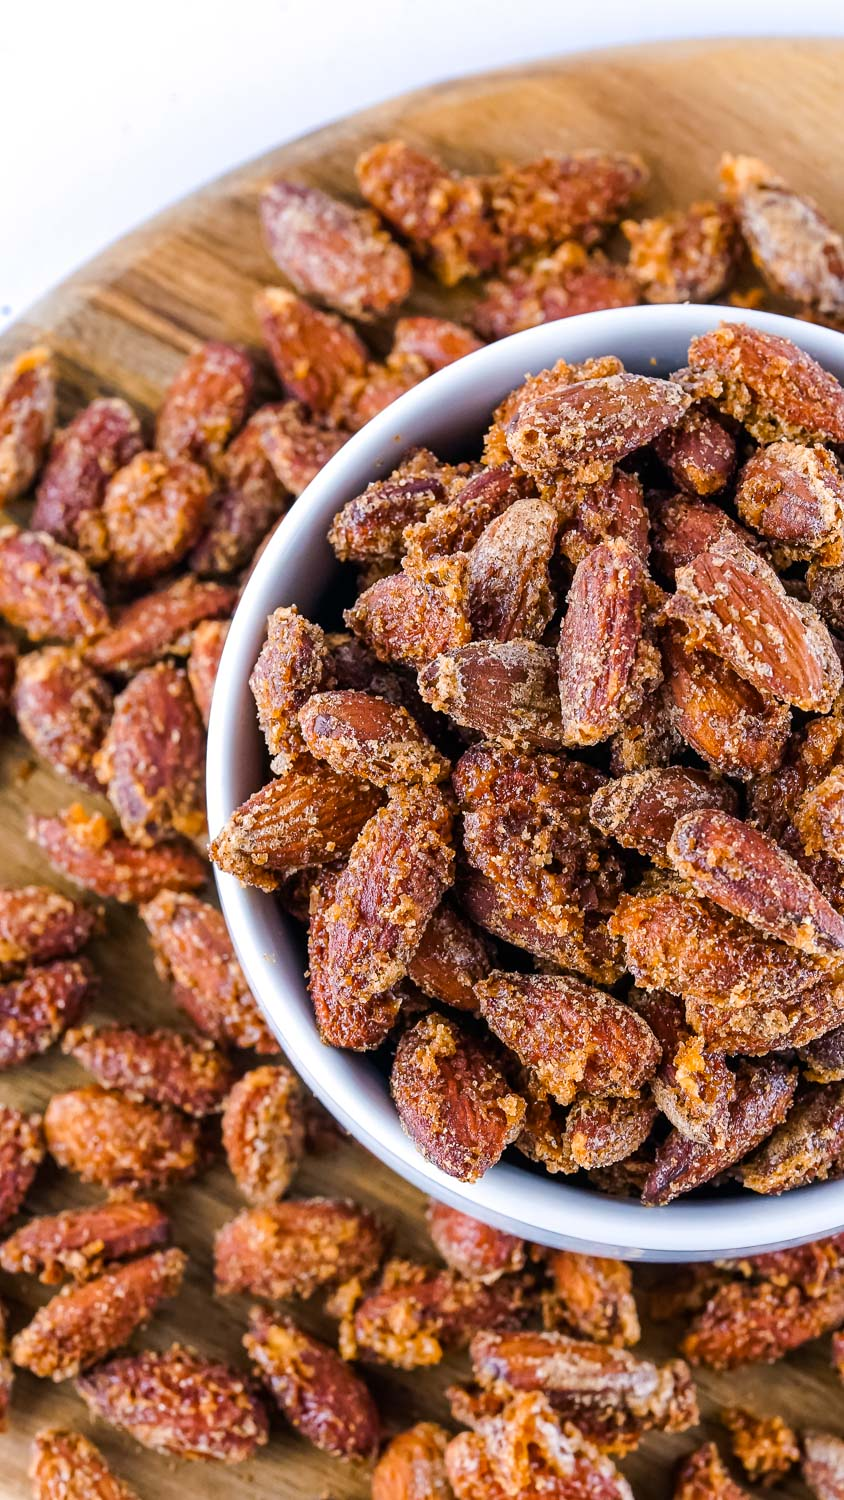 A bowl full of the finished Cinnamon Sugar Smoked Almonds.